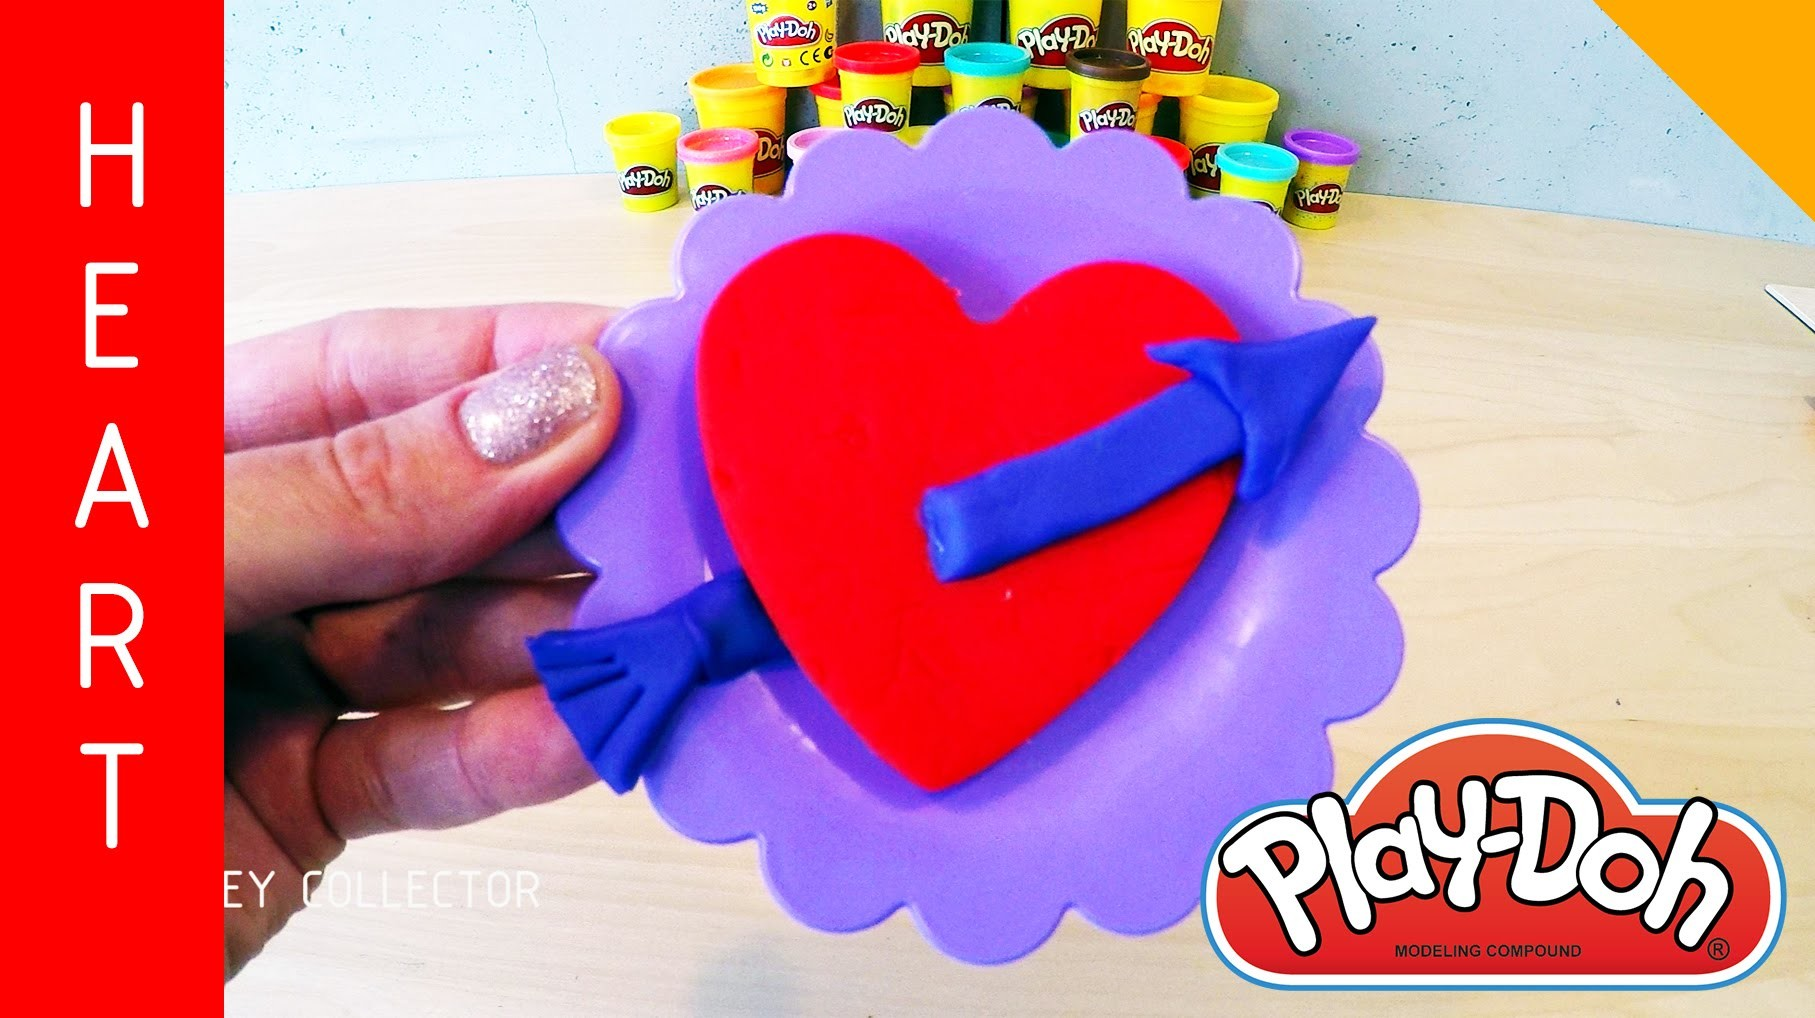 The heart pierced by an arrow - how to make a cake for Christmas with Play-Doh?